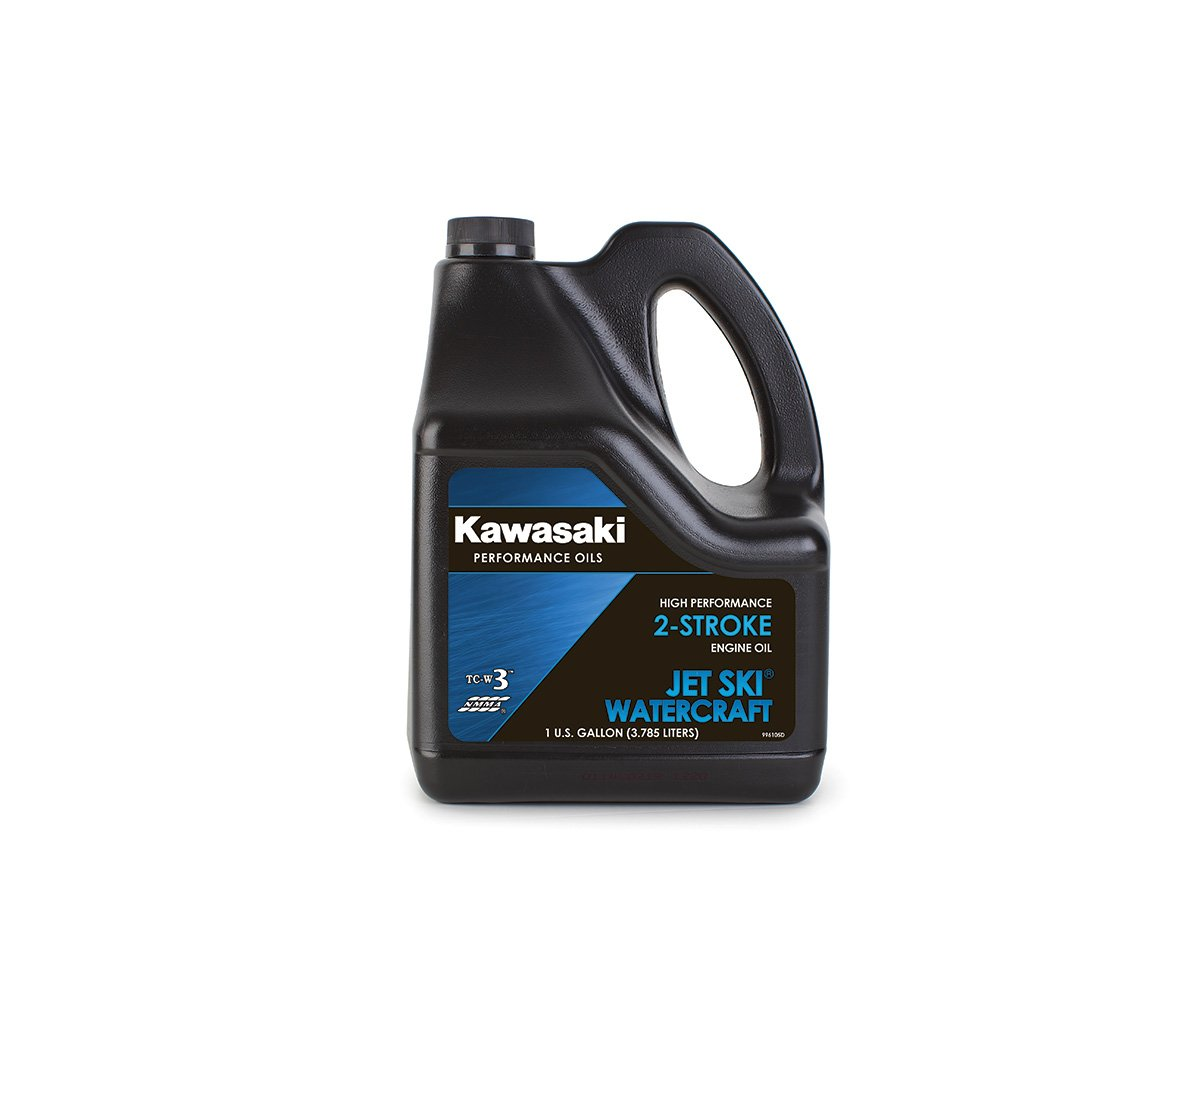 Kawasaki OEM Performance 2-Stroke Jet Ski® Watercraft Oil by Kawasaki. OEM W61020-305